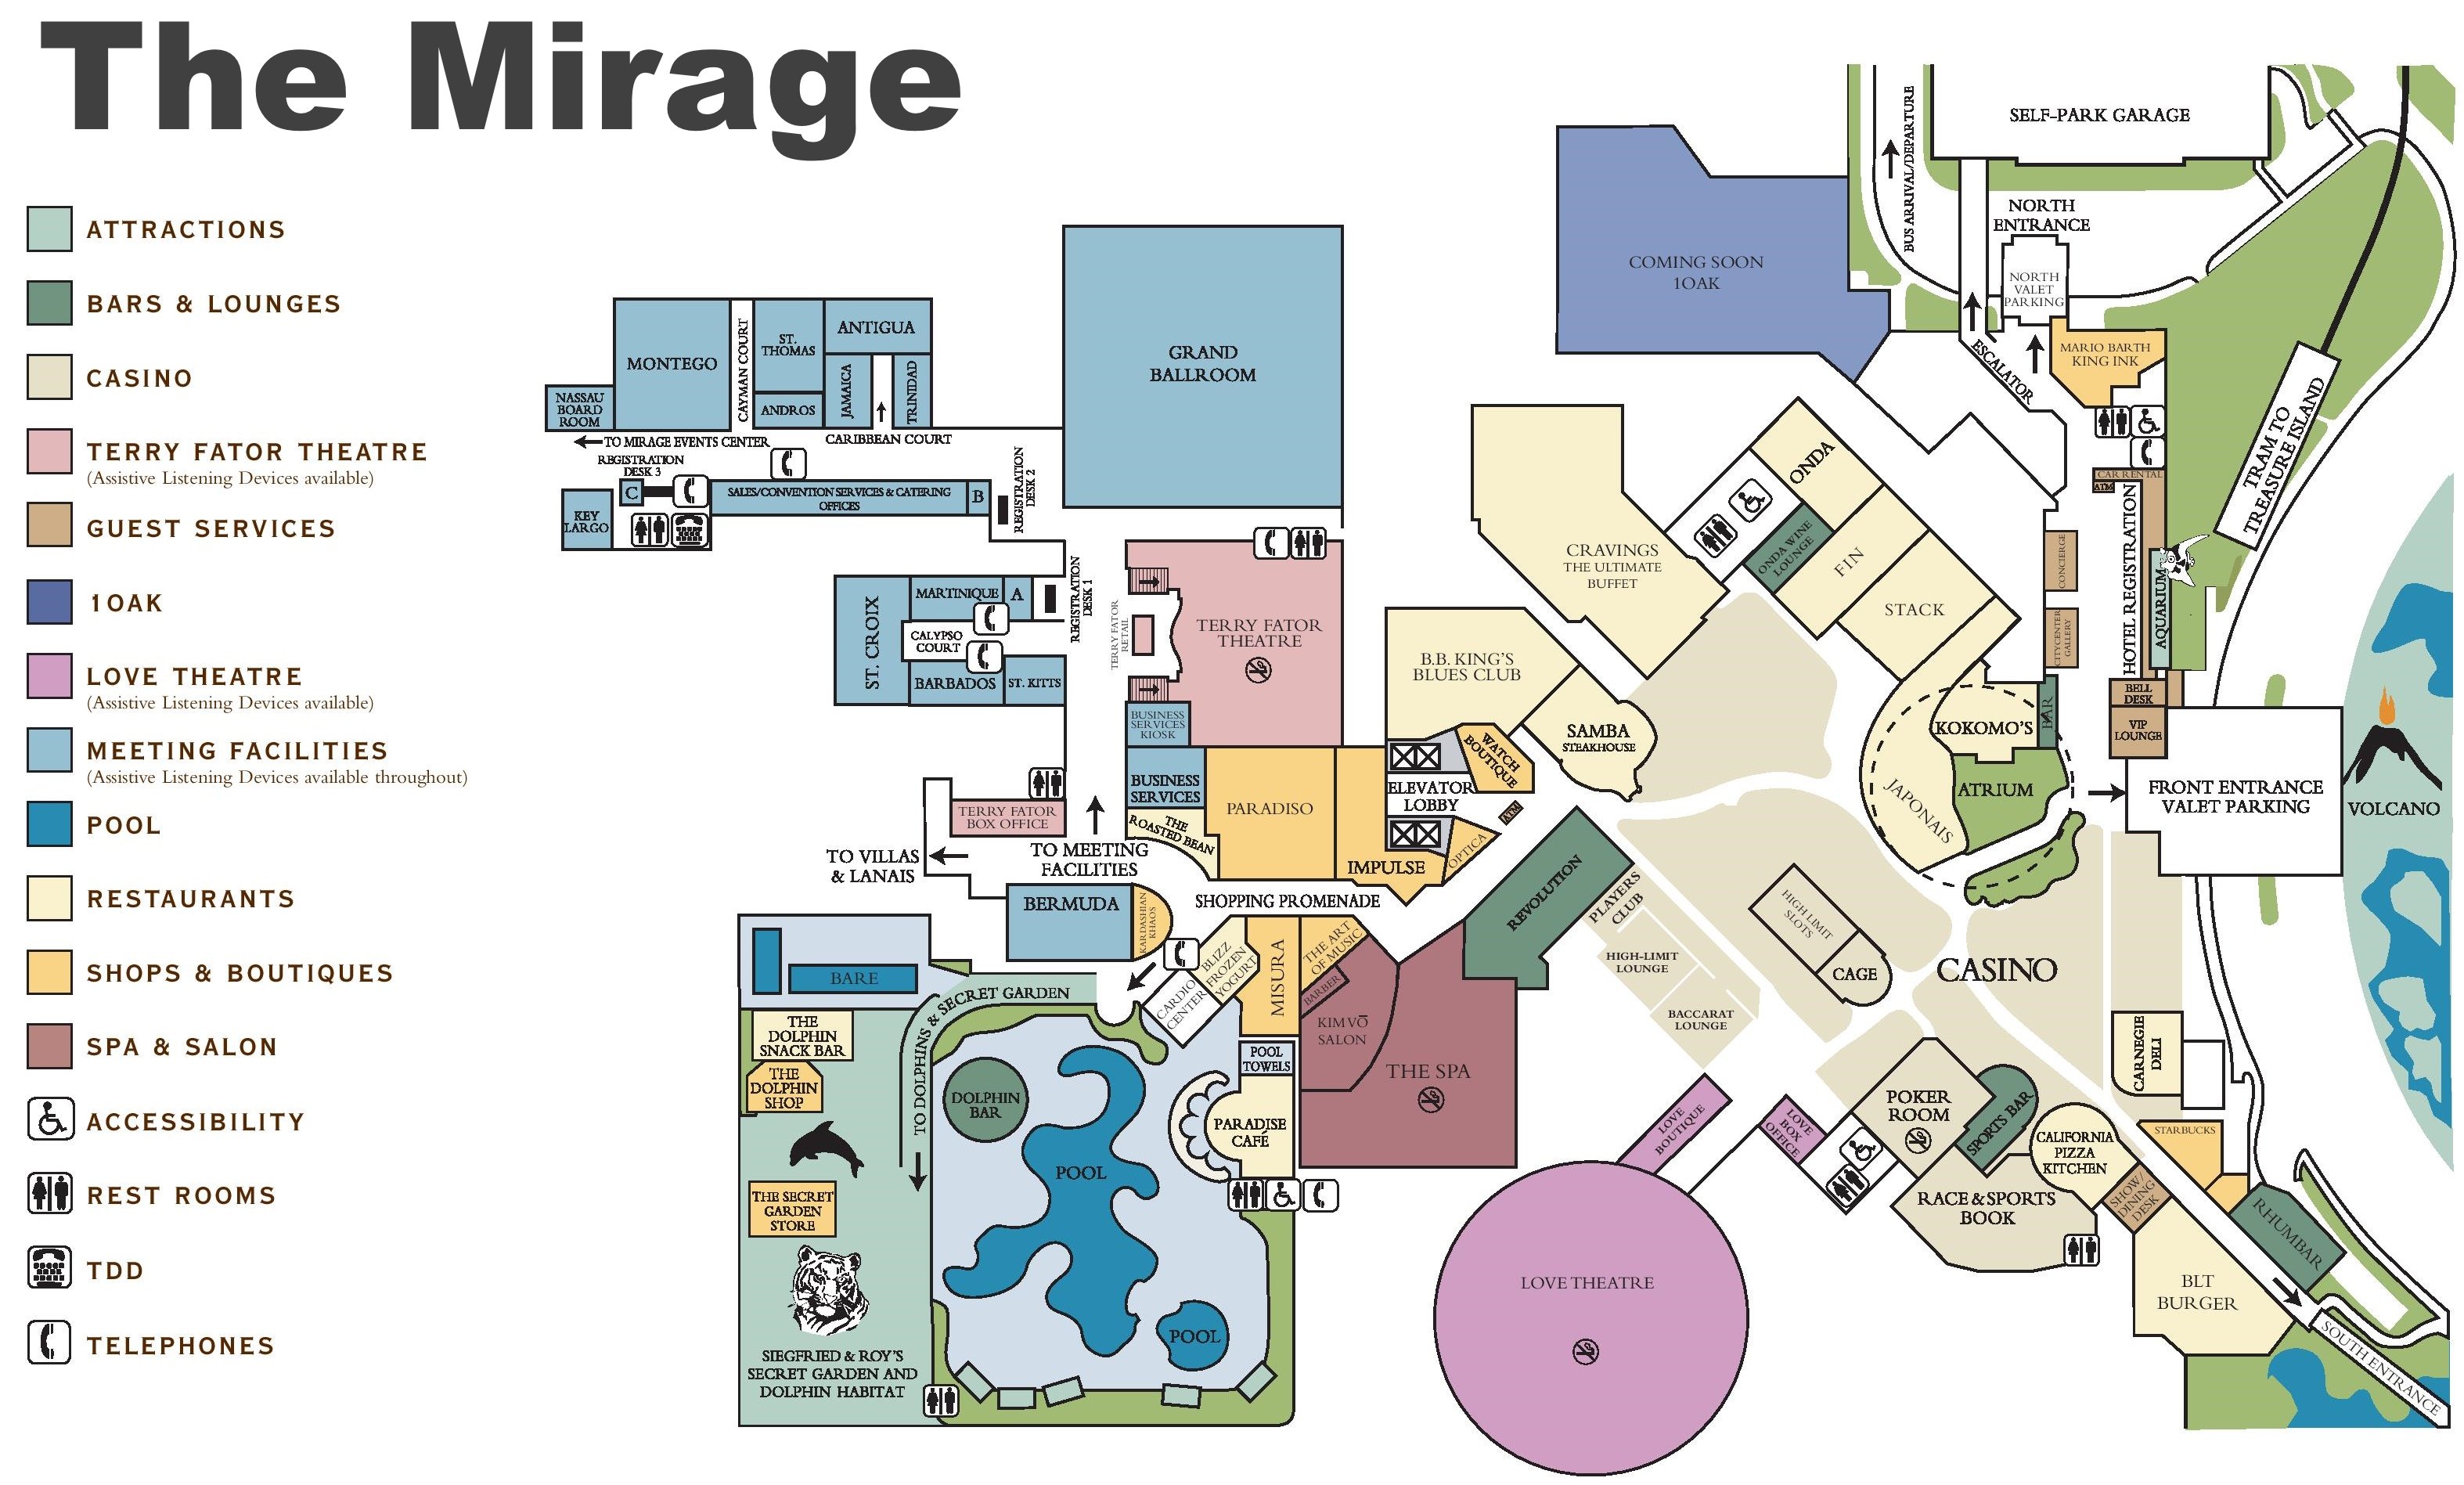 Las Vegas The Mirage hotel map